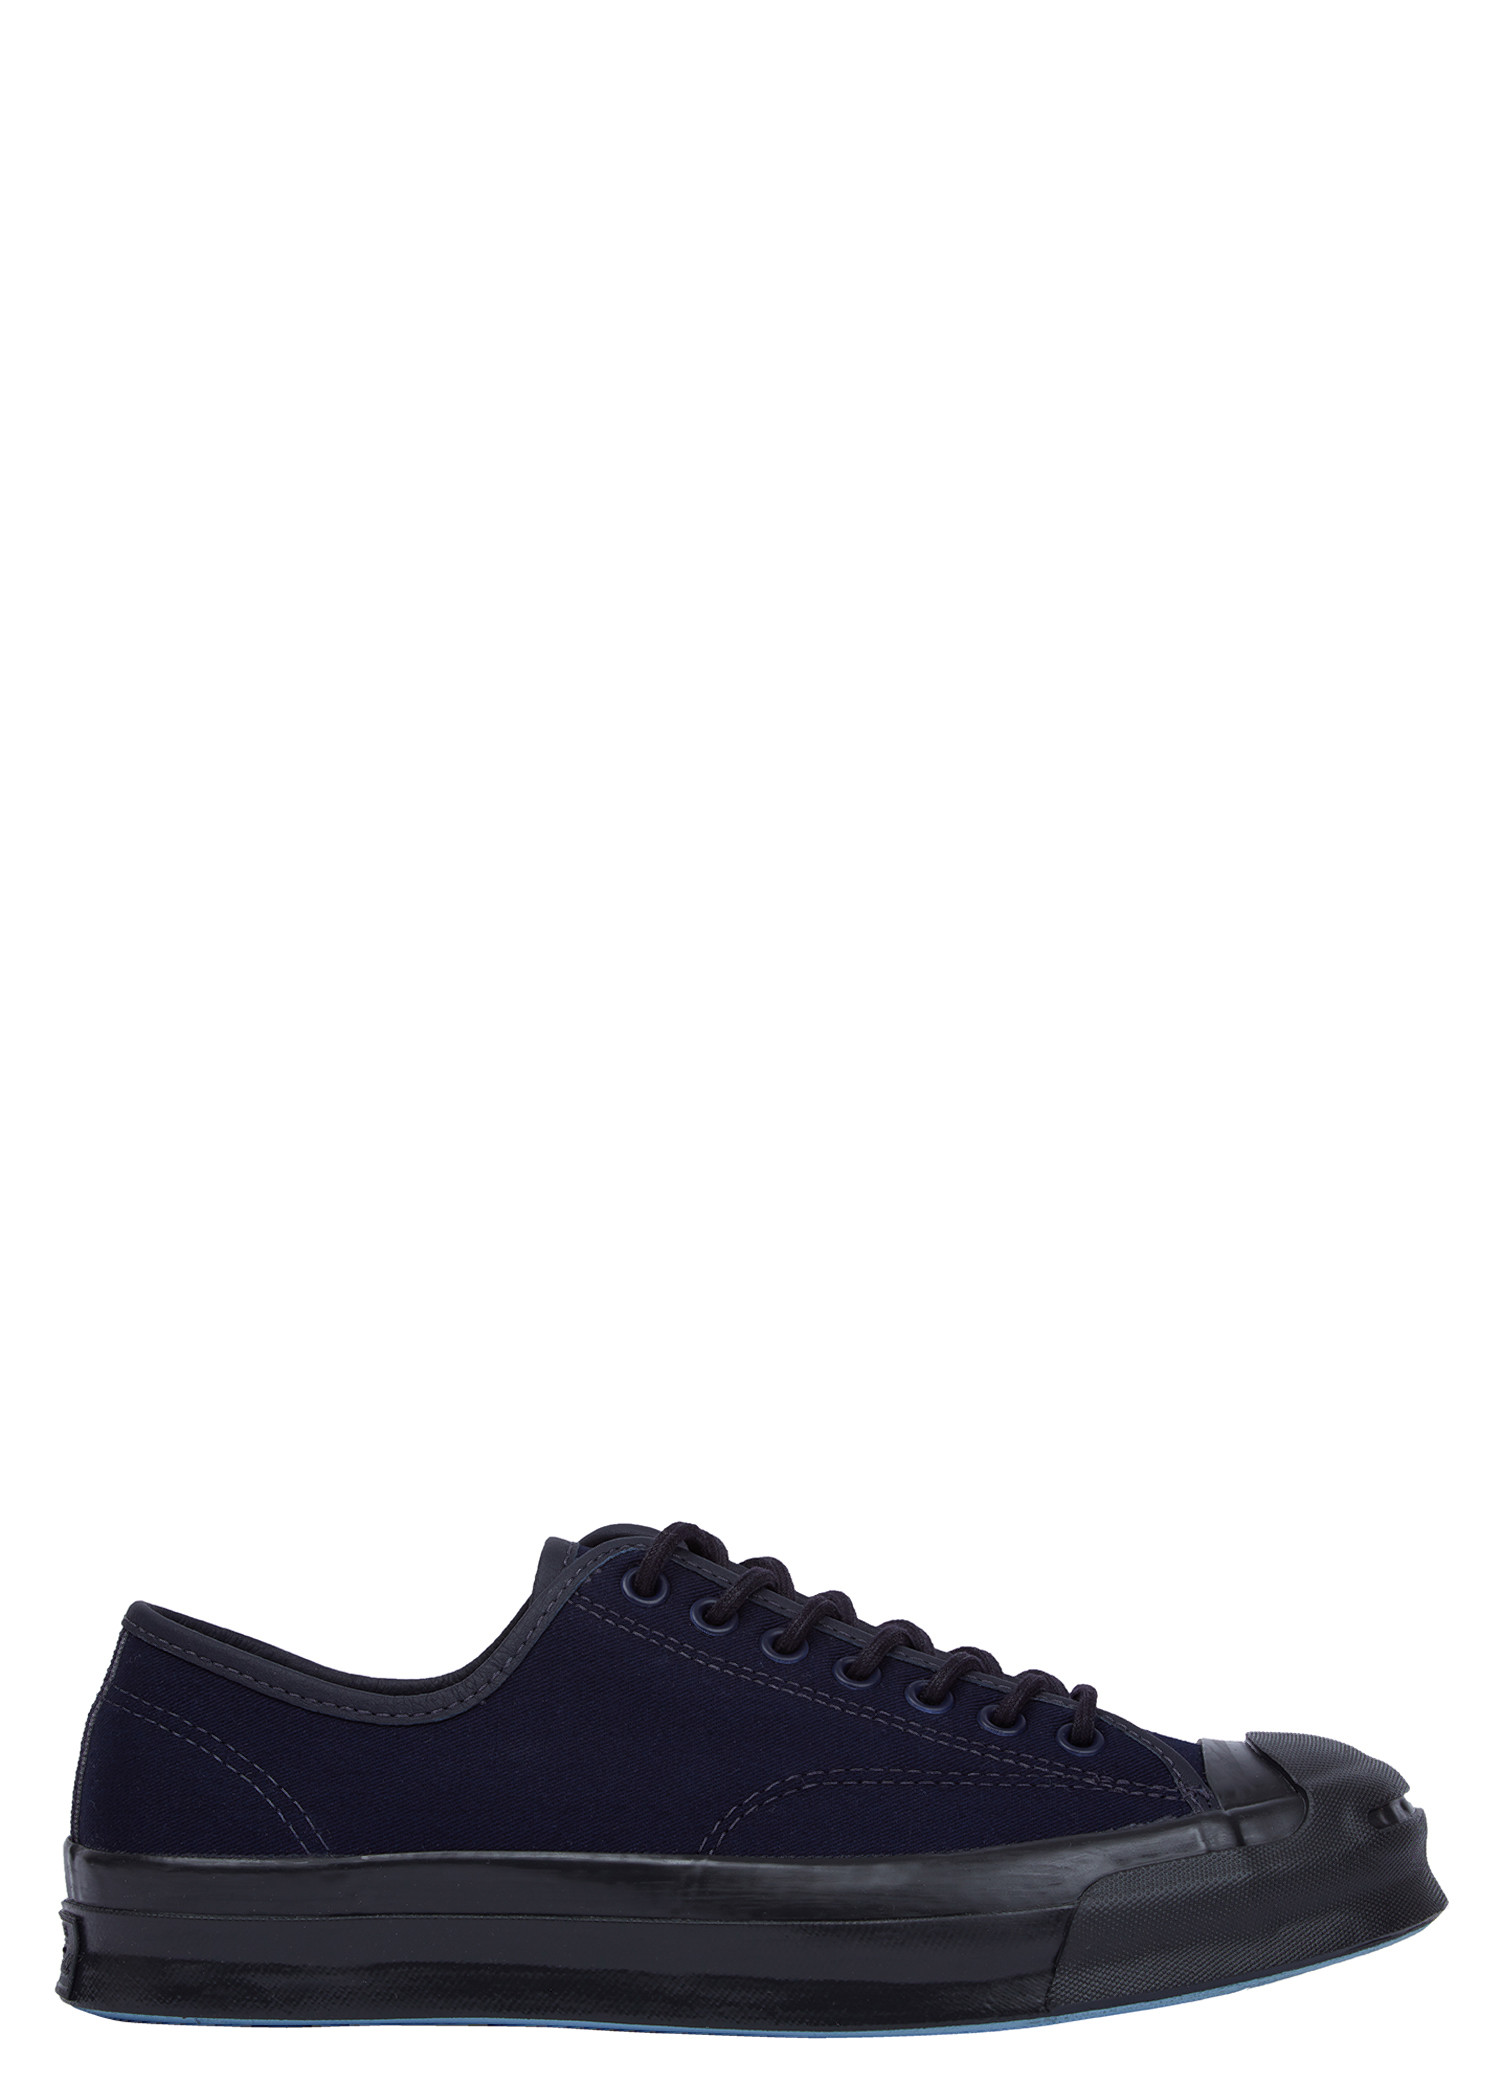 64bf3a1cbd22 Converse Jp Signature Ox Inked Inked Almost Black In Dark Blue ...